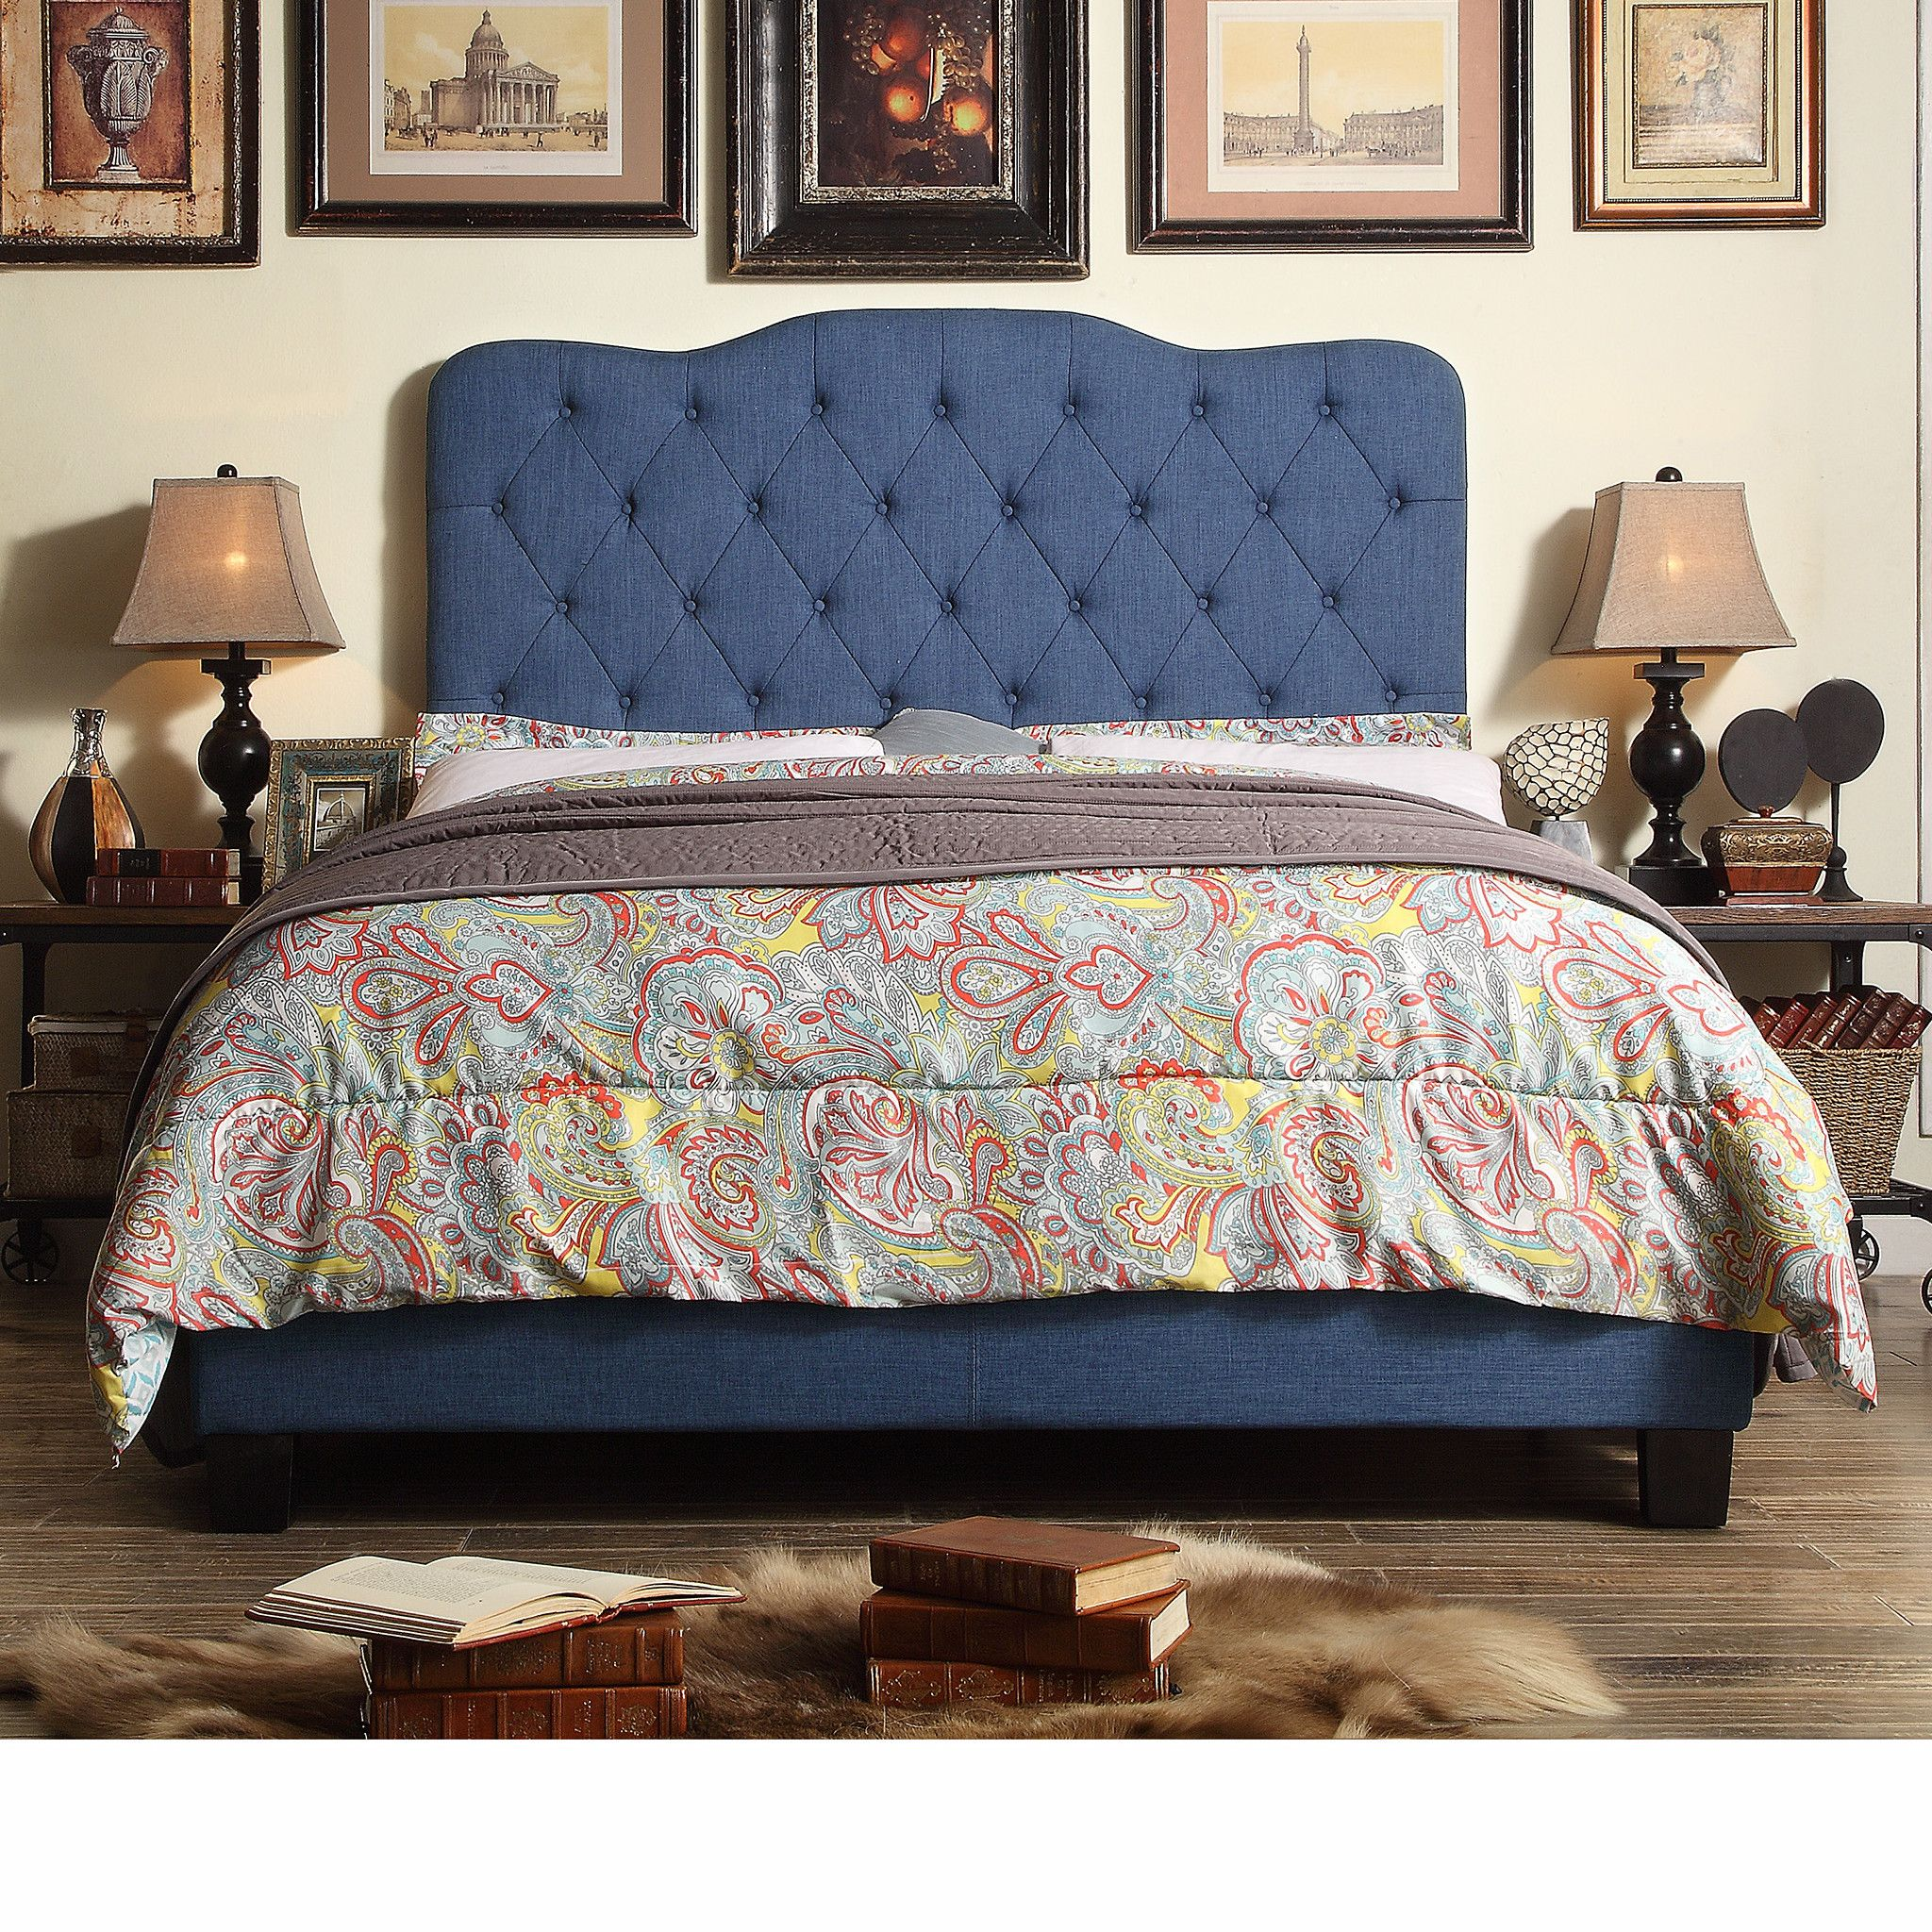 Shop Wayfair for Beds to match every style and budget